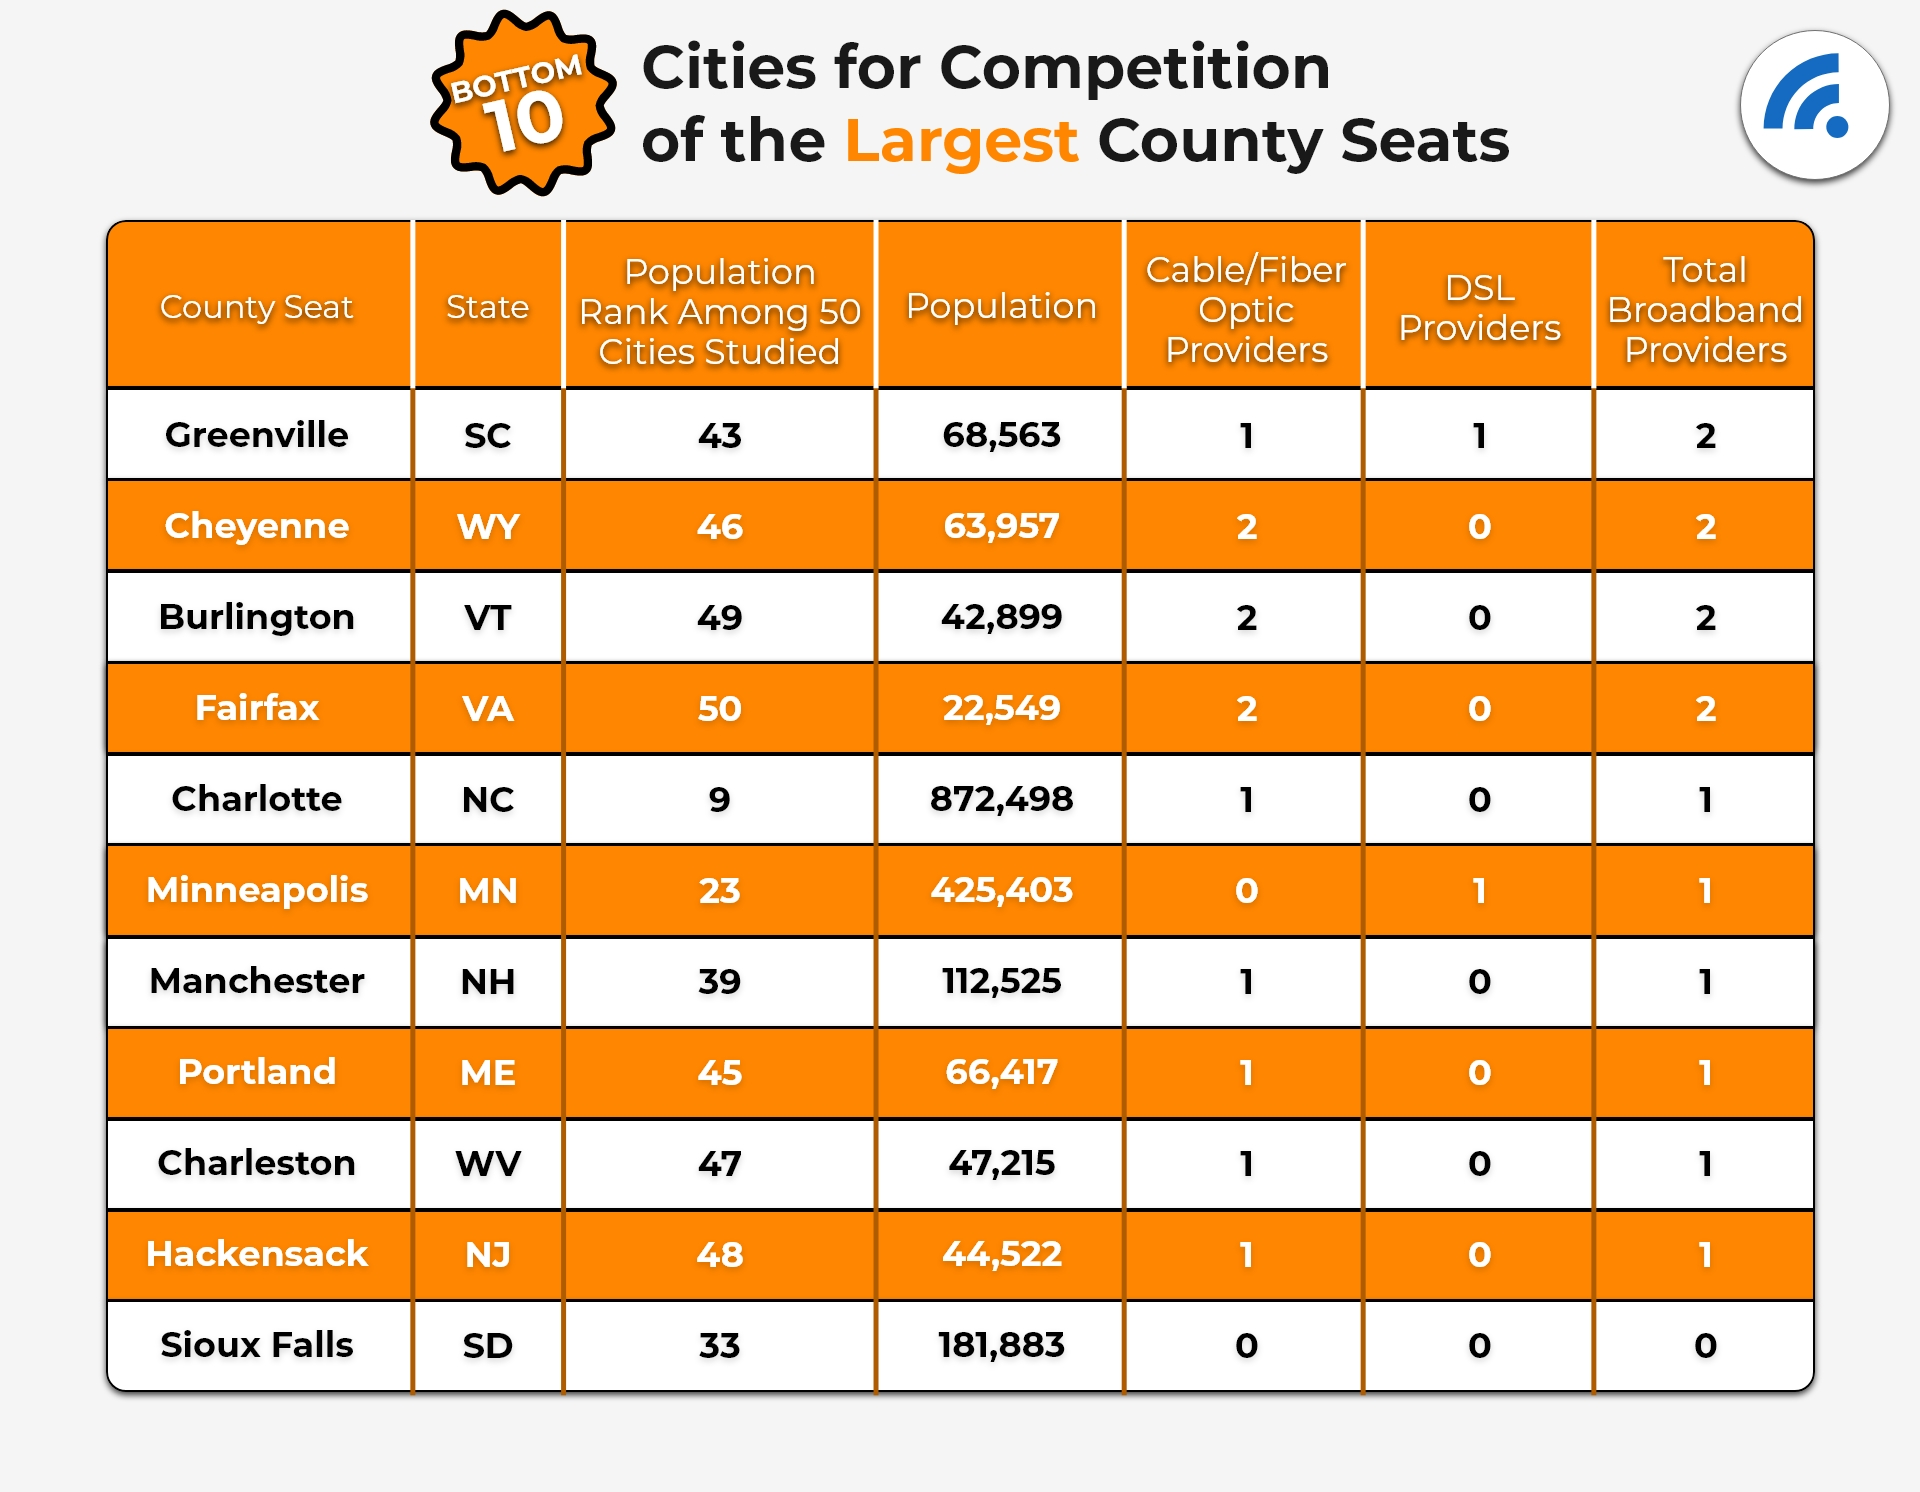 Bottom 10 Cities For Competition of the Largest County Seats